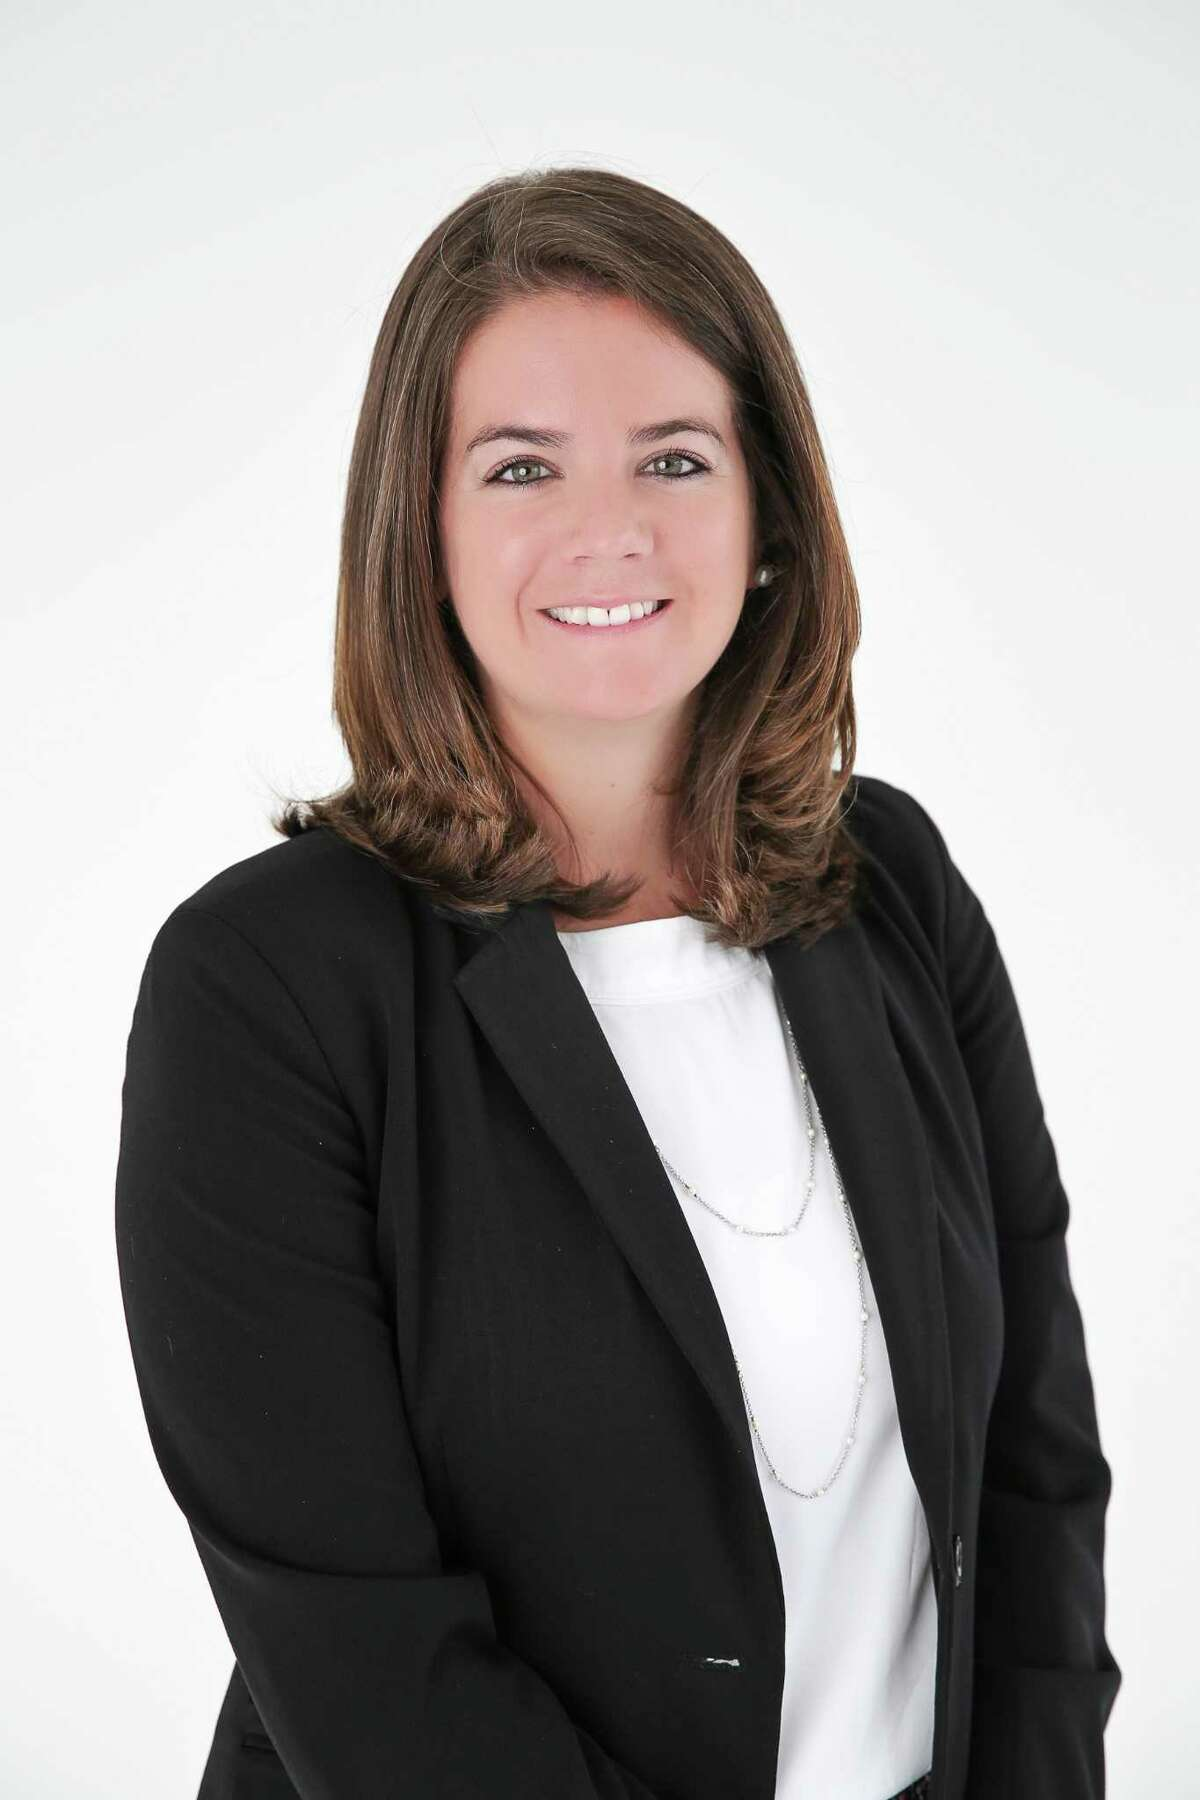 Sasha Houlihan, a Greenwich native with corporate experience, is leaving the job of director of communications with the Greenwich Public Schools.